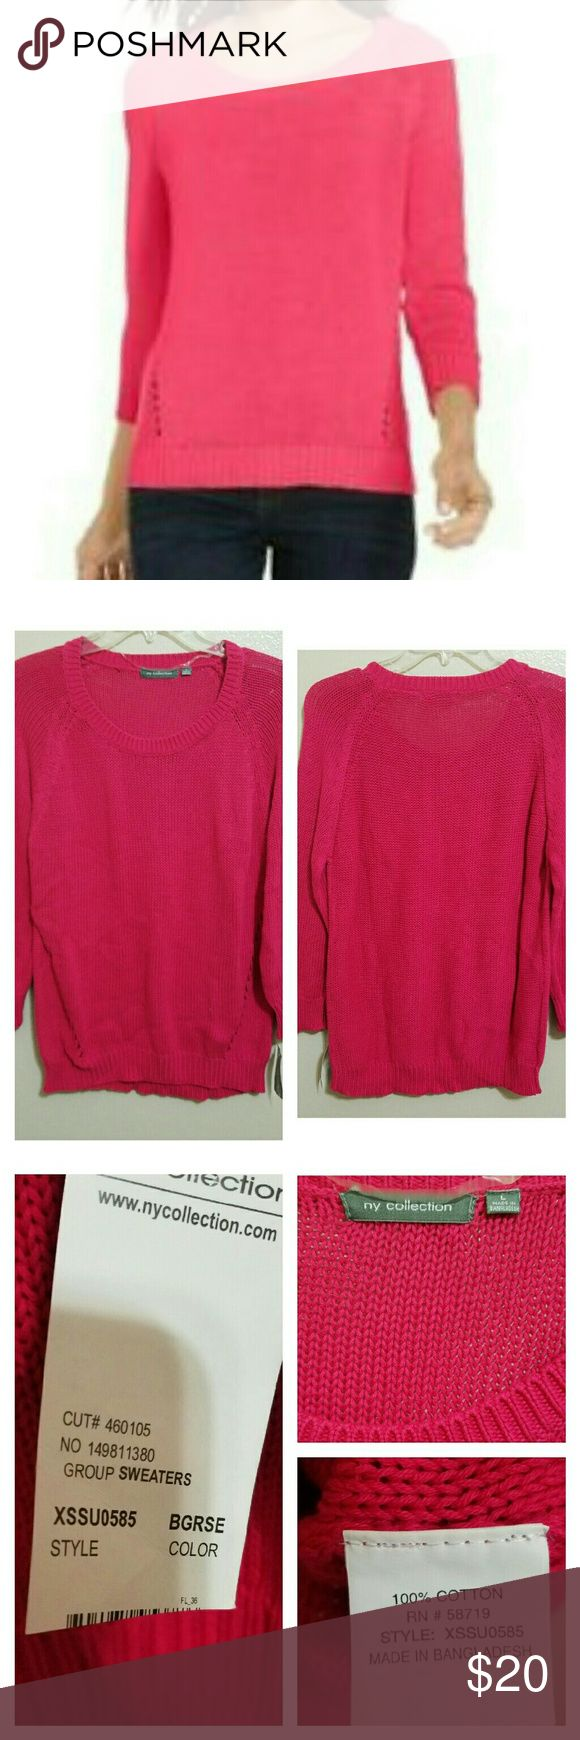 🆕NY Collection Hot Pink Sweater Beautiful knit sweater that will make your wardrobe pop! Pics 2 and 3 are of actual sweater you are purchasing. NY Collection Sweaters